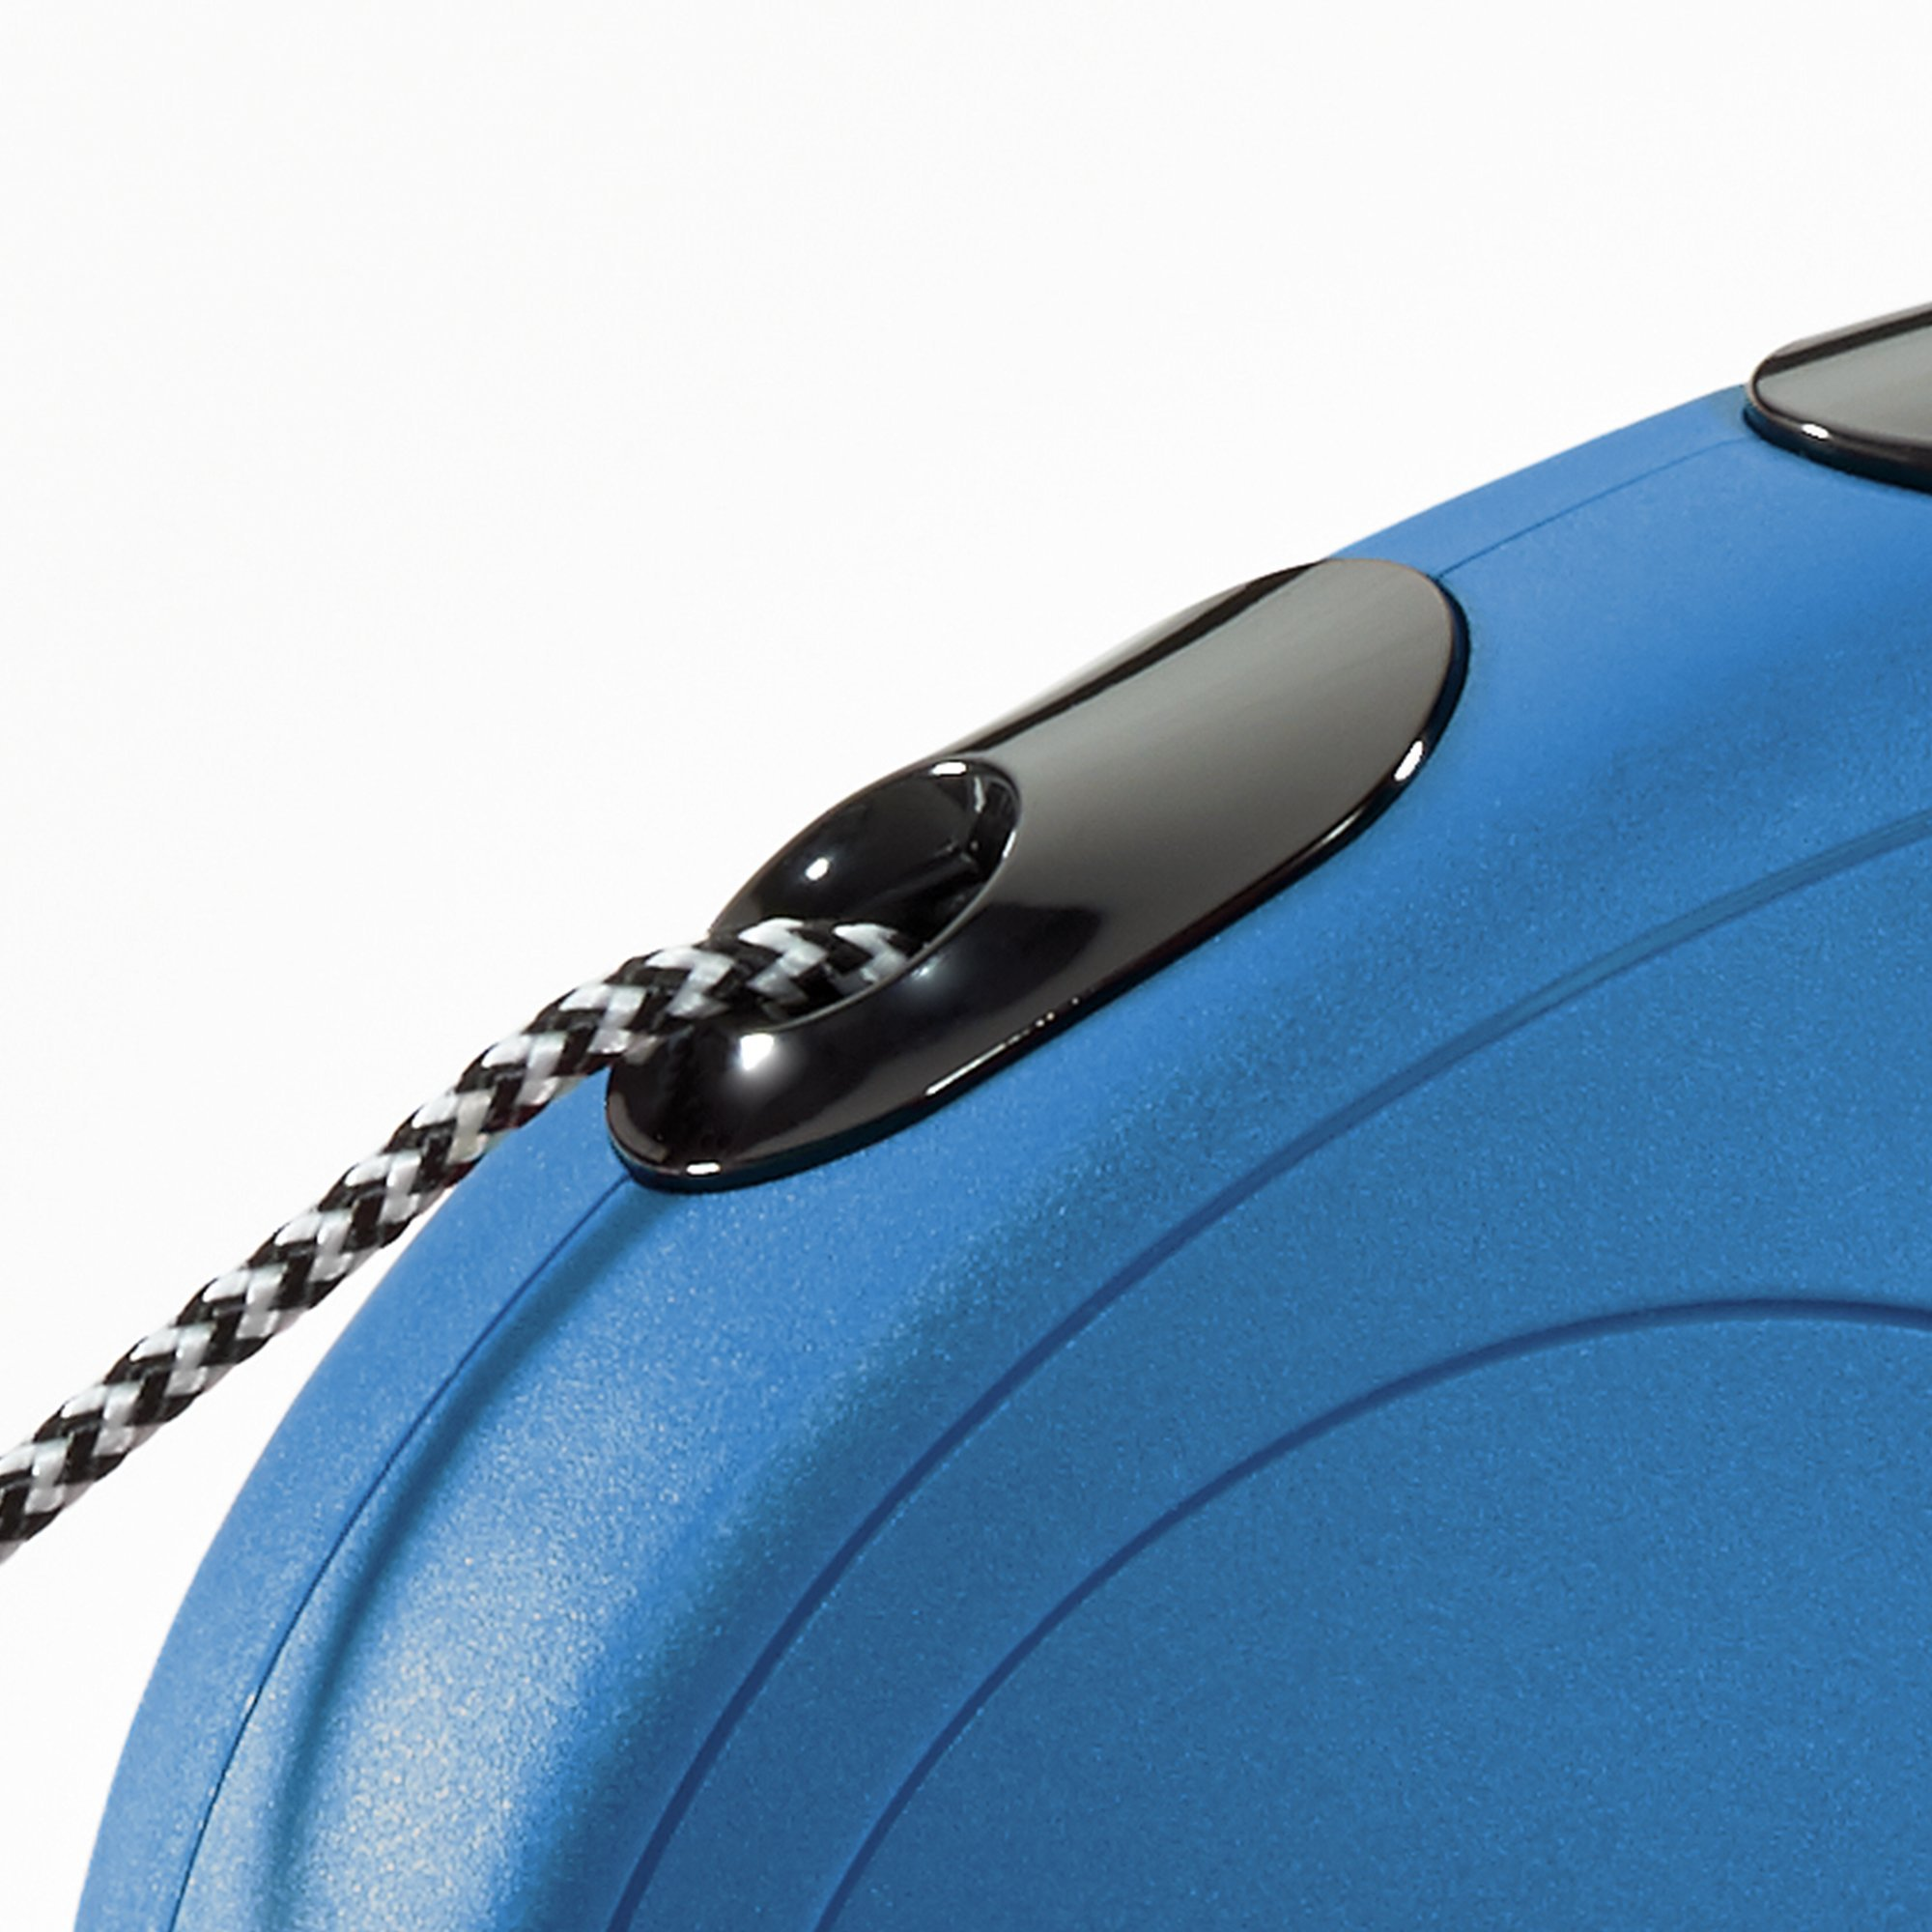 Flexi New Classic Retractable Dog Leash (Cord), 26 ft, Small, Blue by Flexi (Image #3)